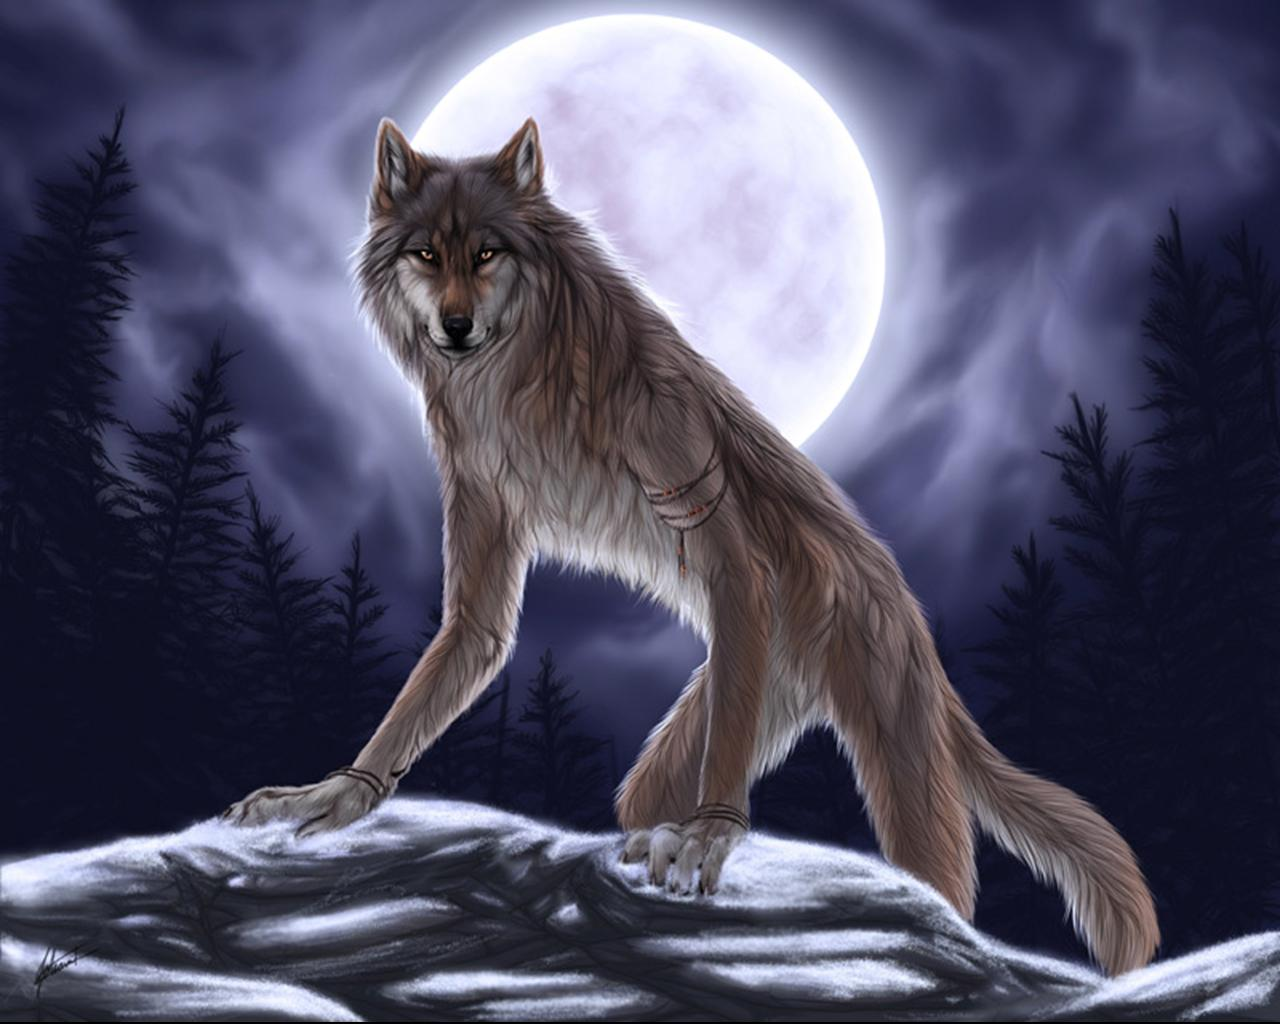 Werewolf - Fantasy Photo (31034491) - Fanpop fanclubs